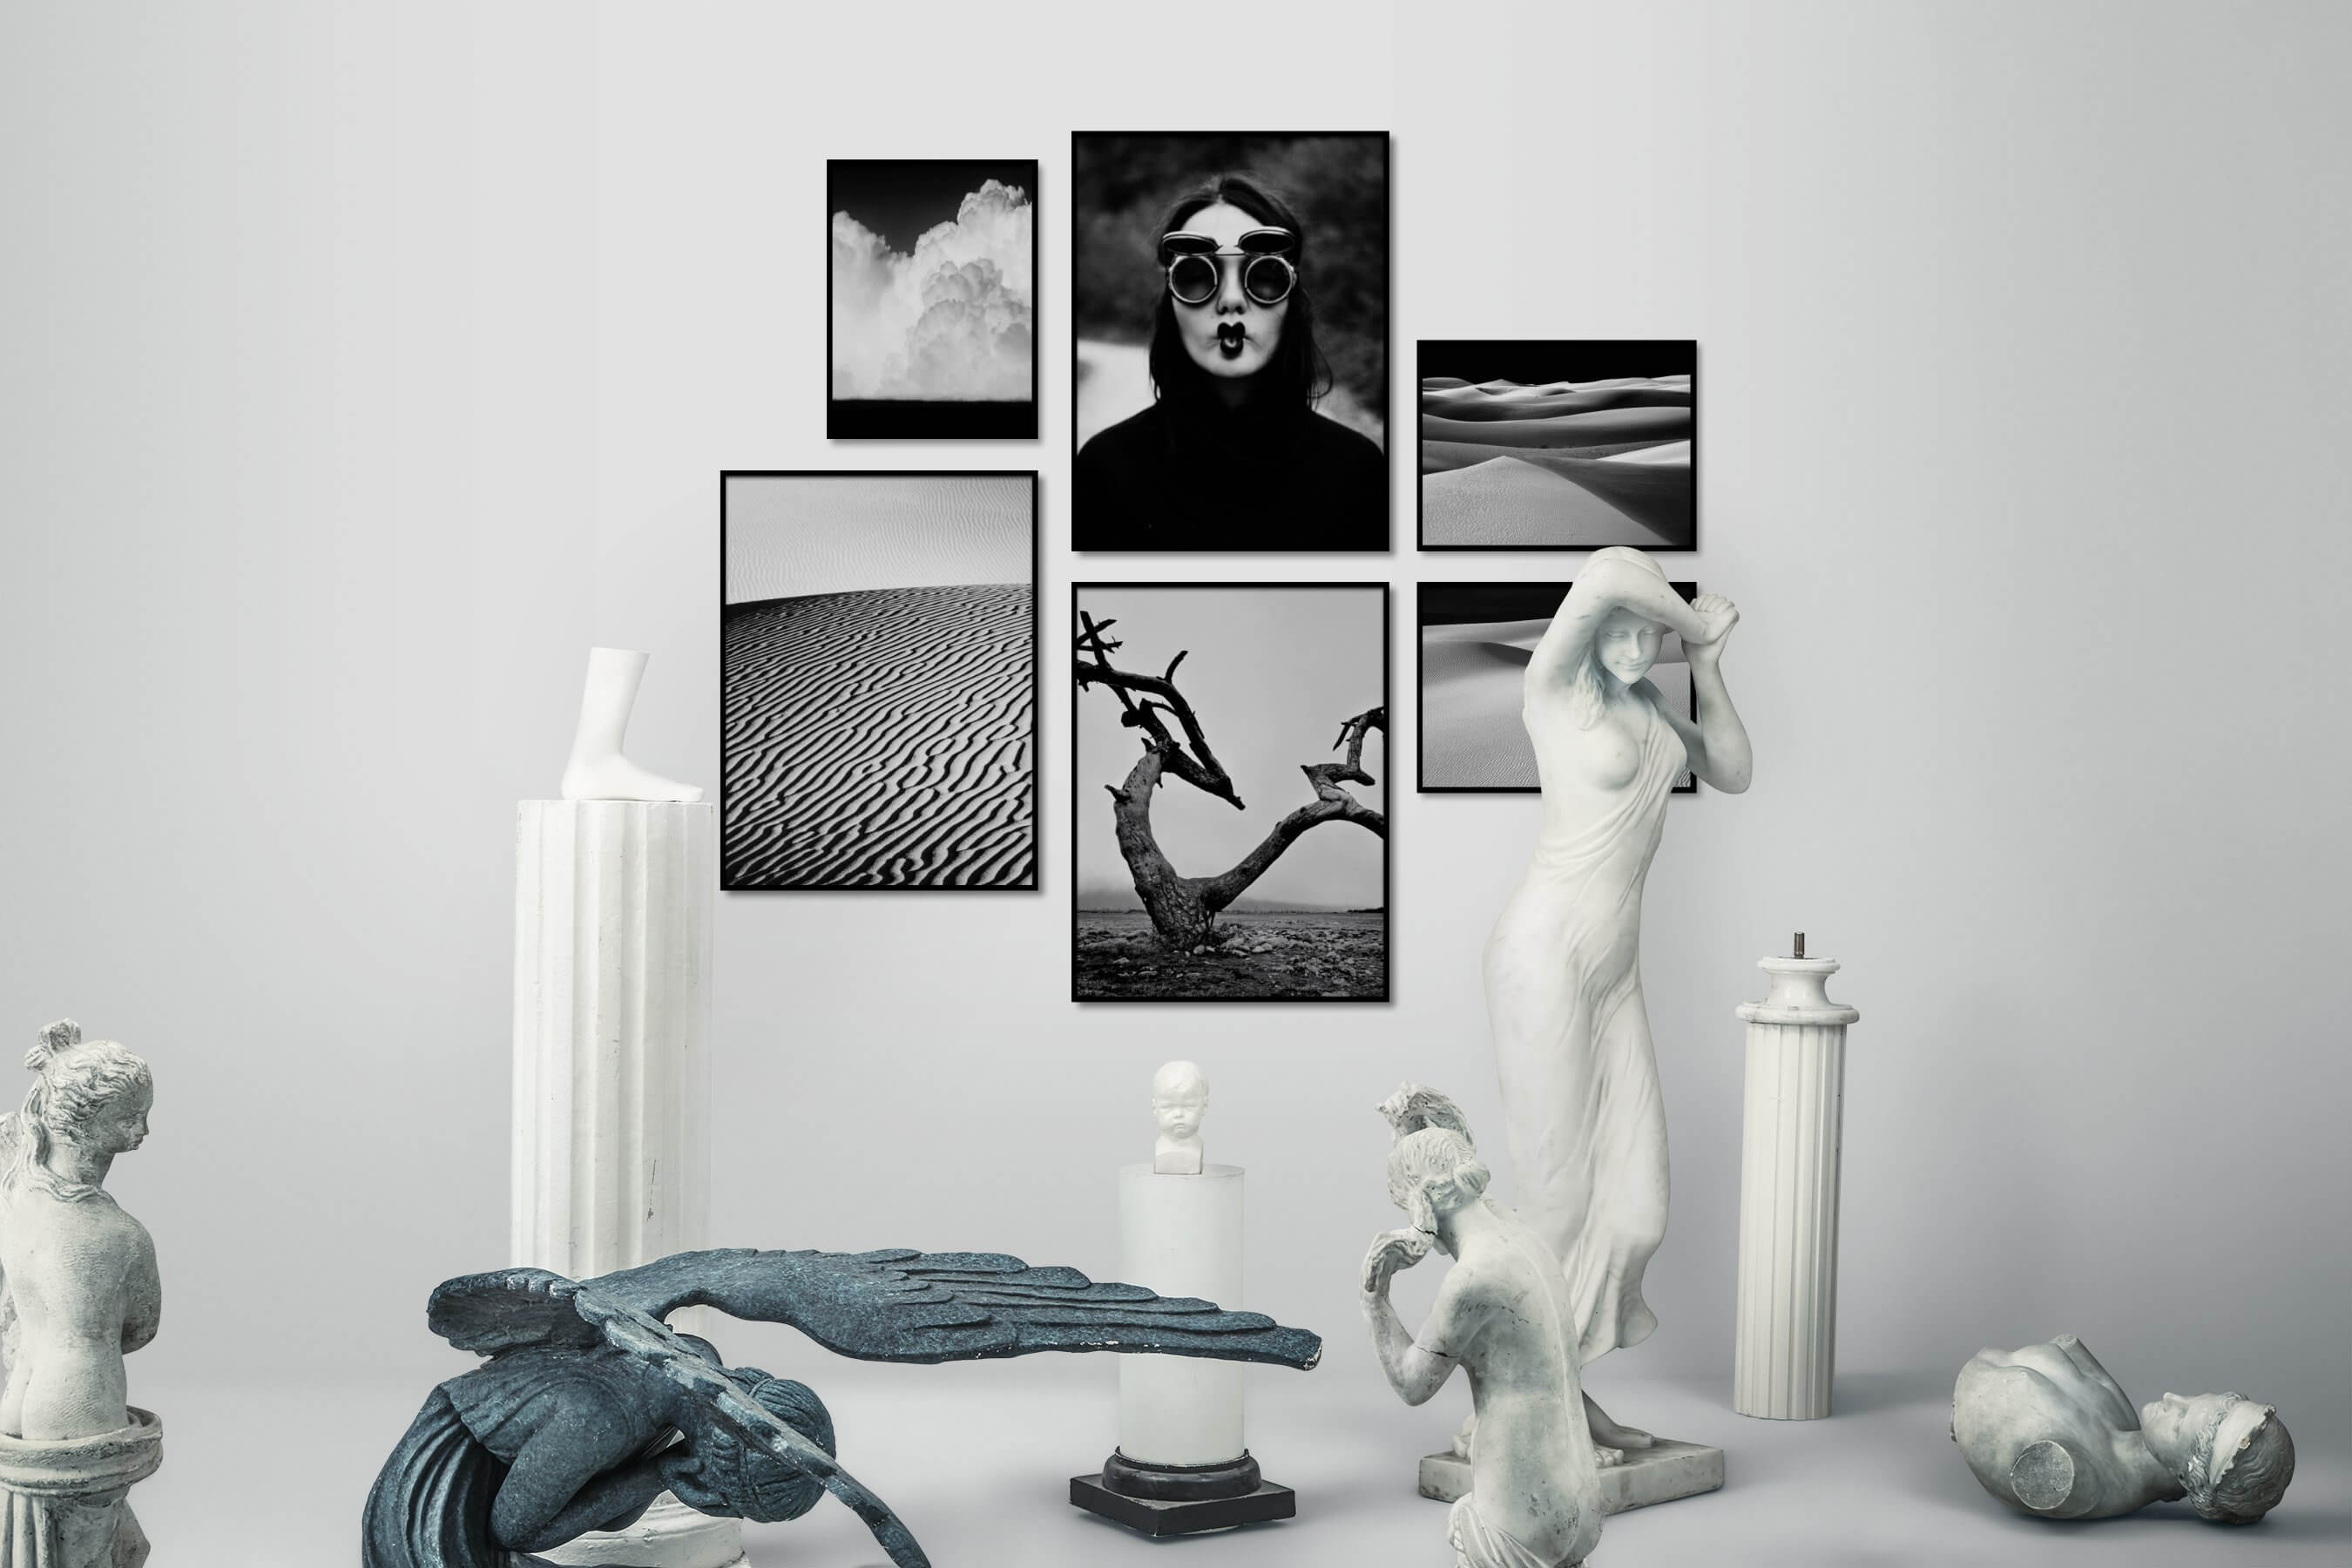 Gallery wall idea with six framed pictures arranged on a wall depicting Black & White, Country Life, Mindfulness, Artsy, For the Minimalist, Nature, and For the Moderate